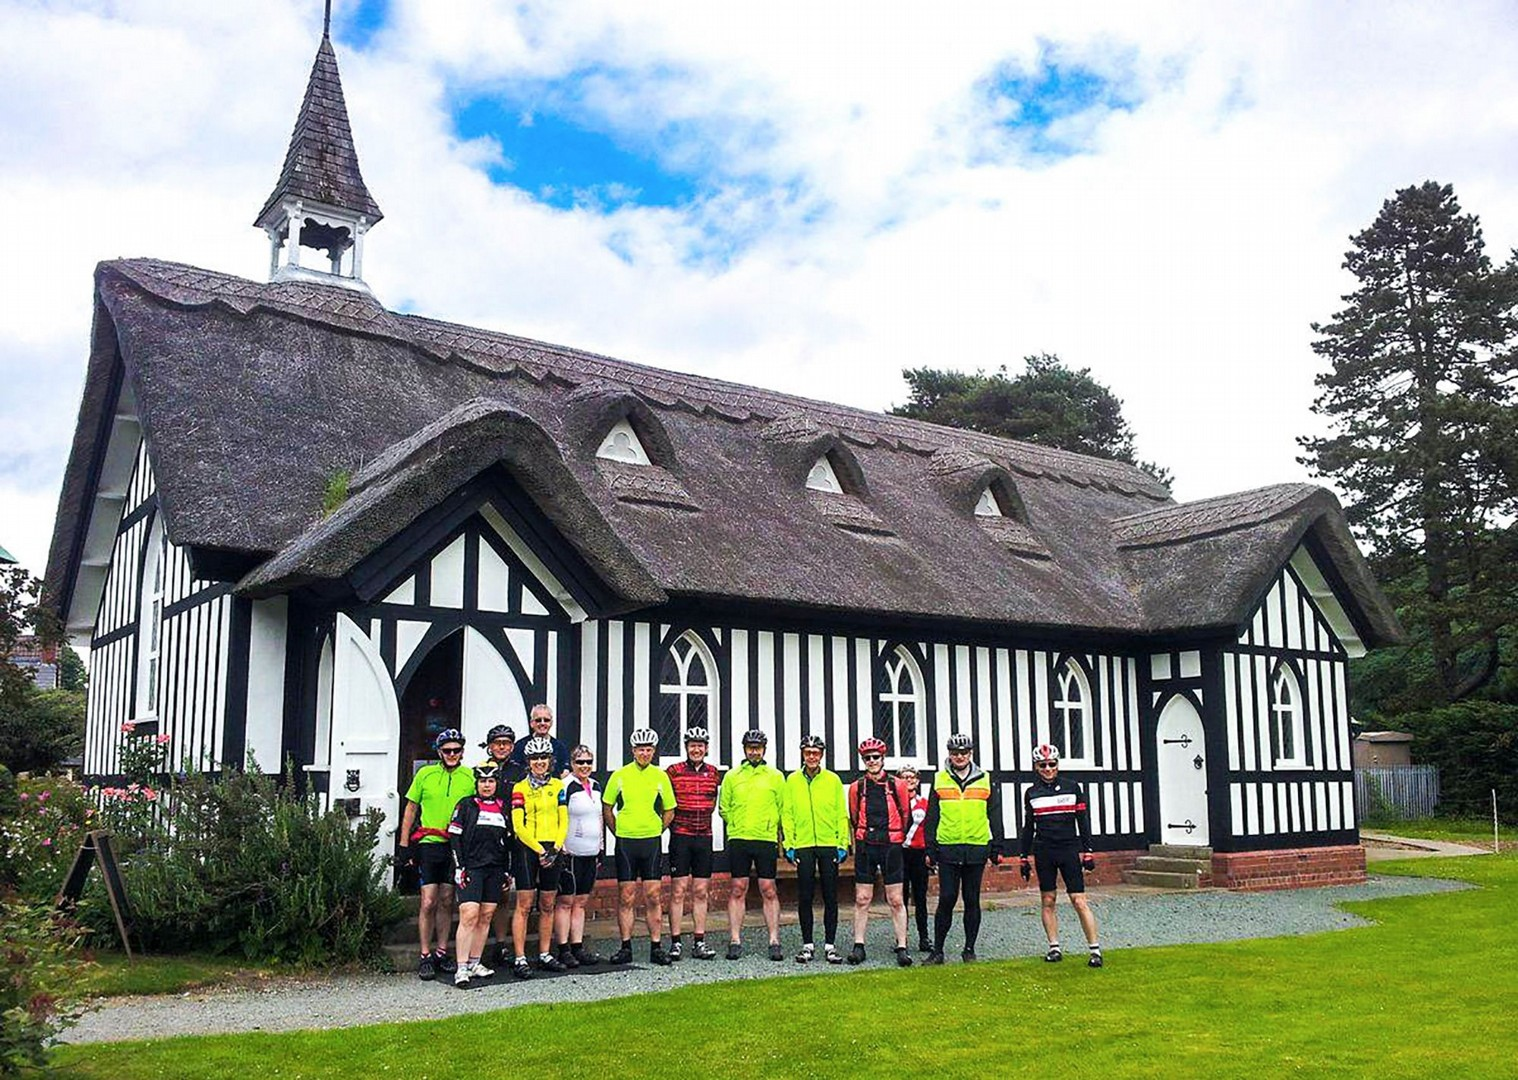 _Staff.560.34476.jpg - UK - South Shropshire - Guided Road Cycling Weekend - Road Cycling